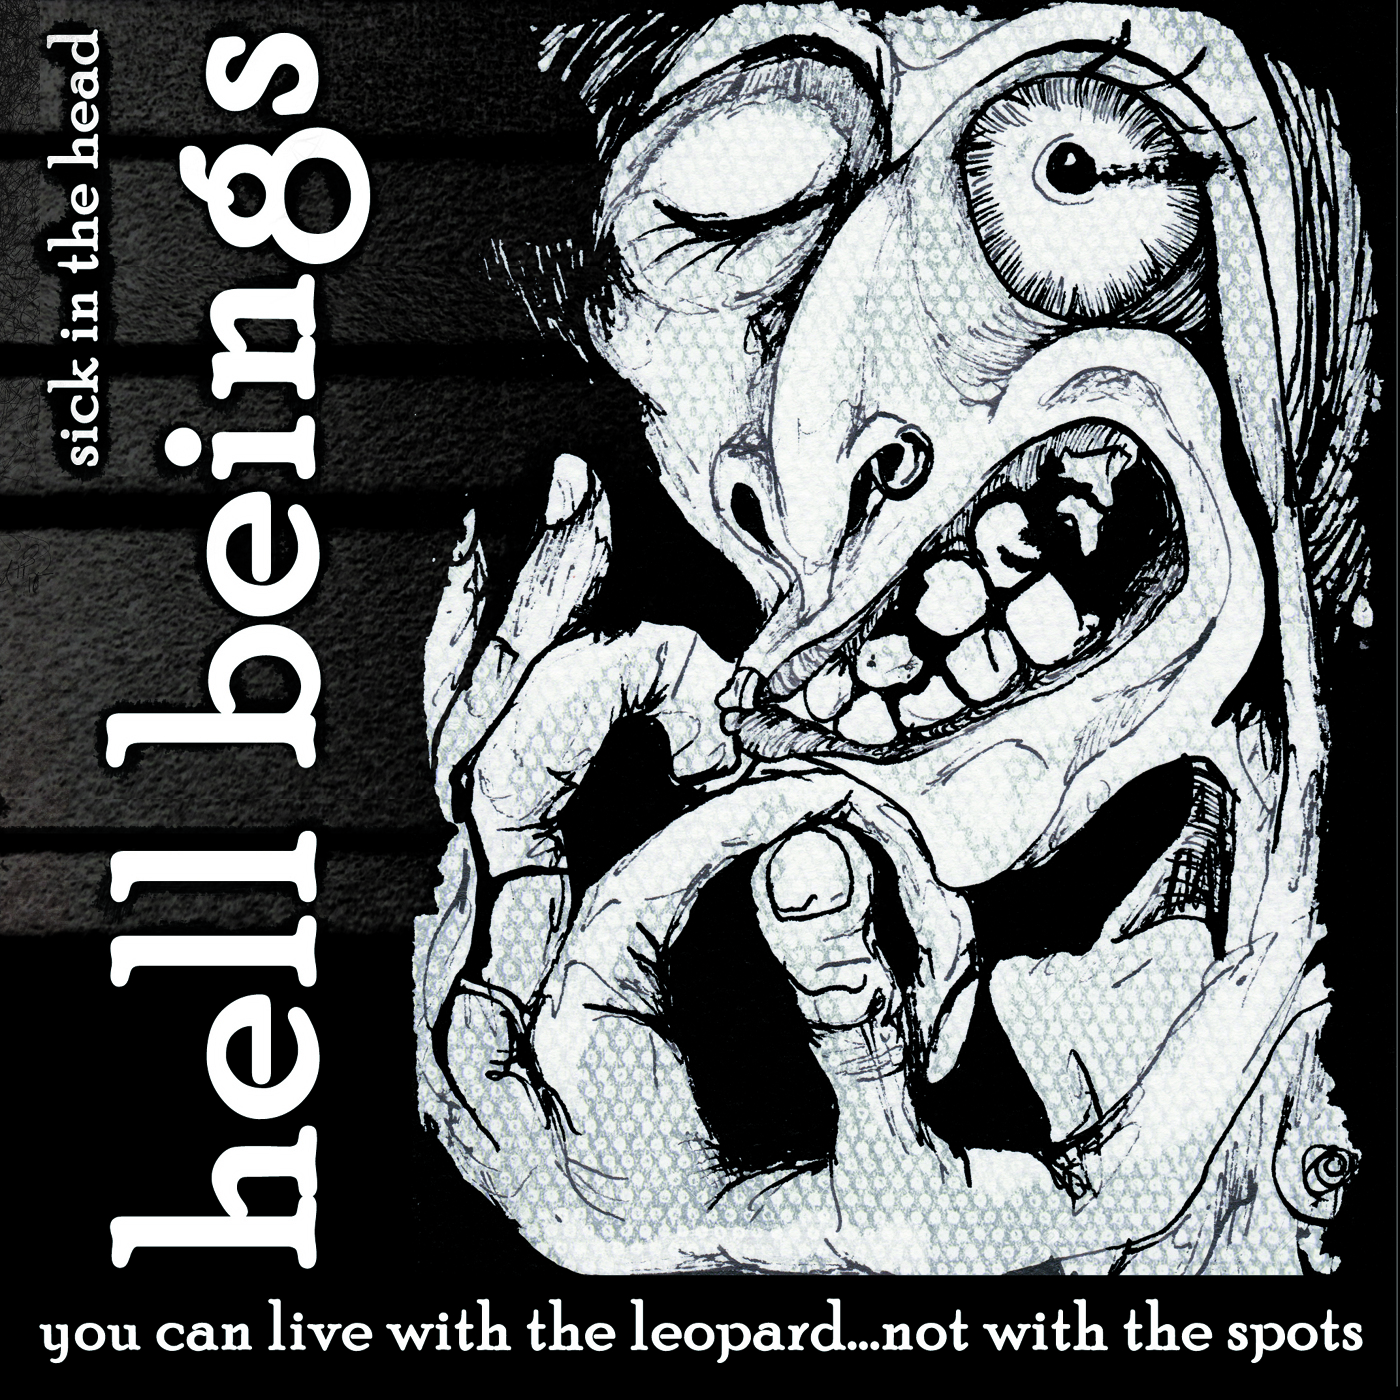 You Can Live With the Leopard...Not With the Spots - Single